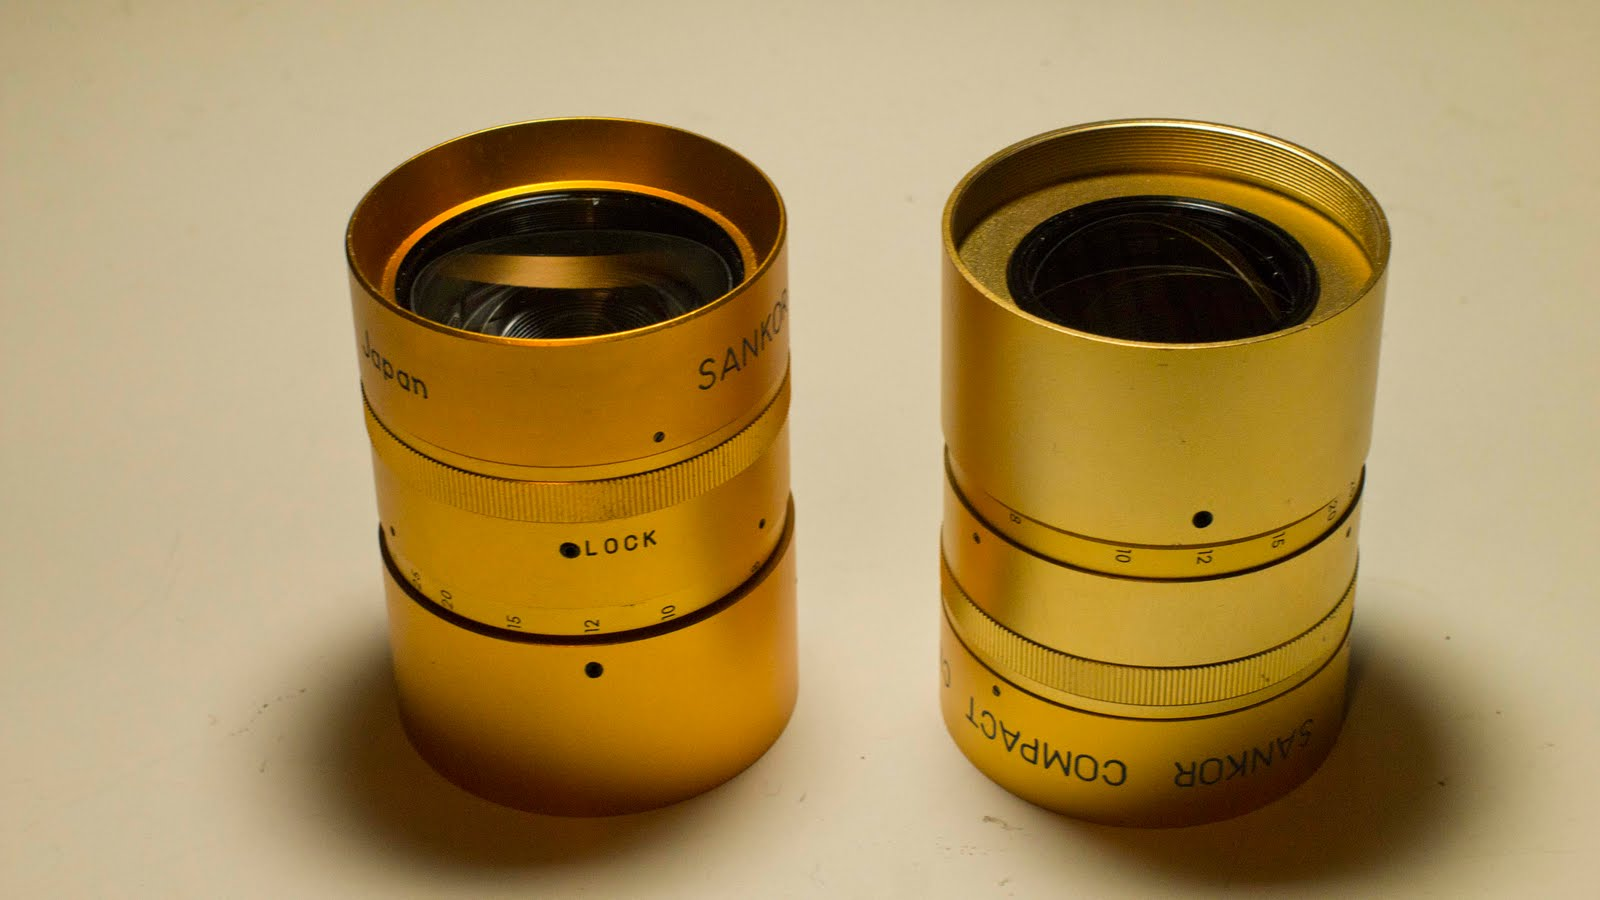 For Sale: Two Sankor Compact Cinemascope Anamorphic